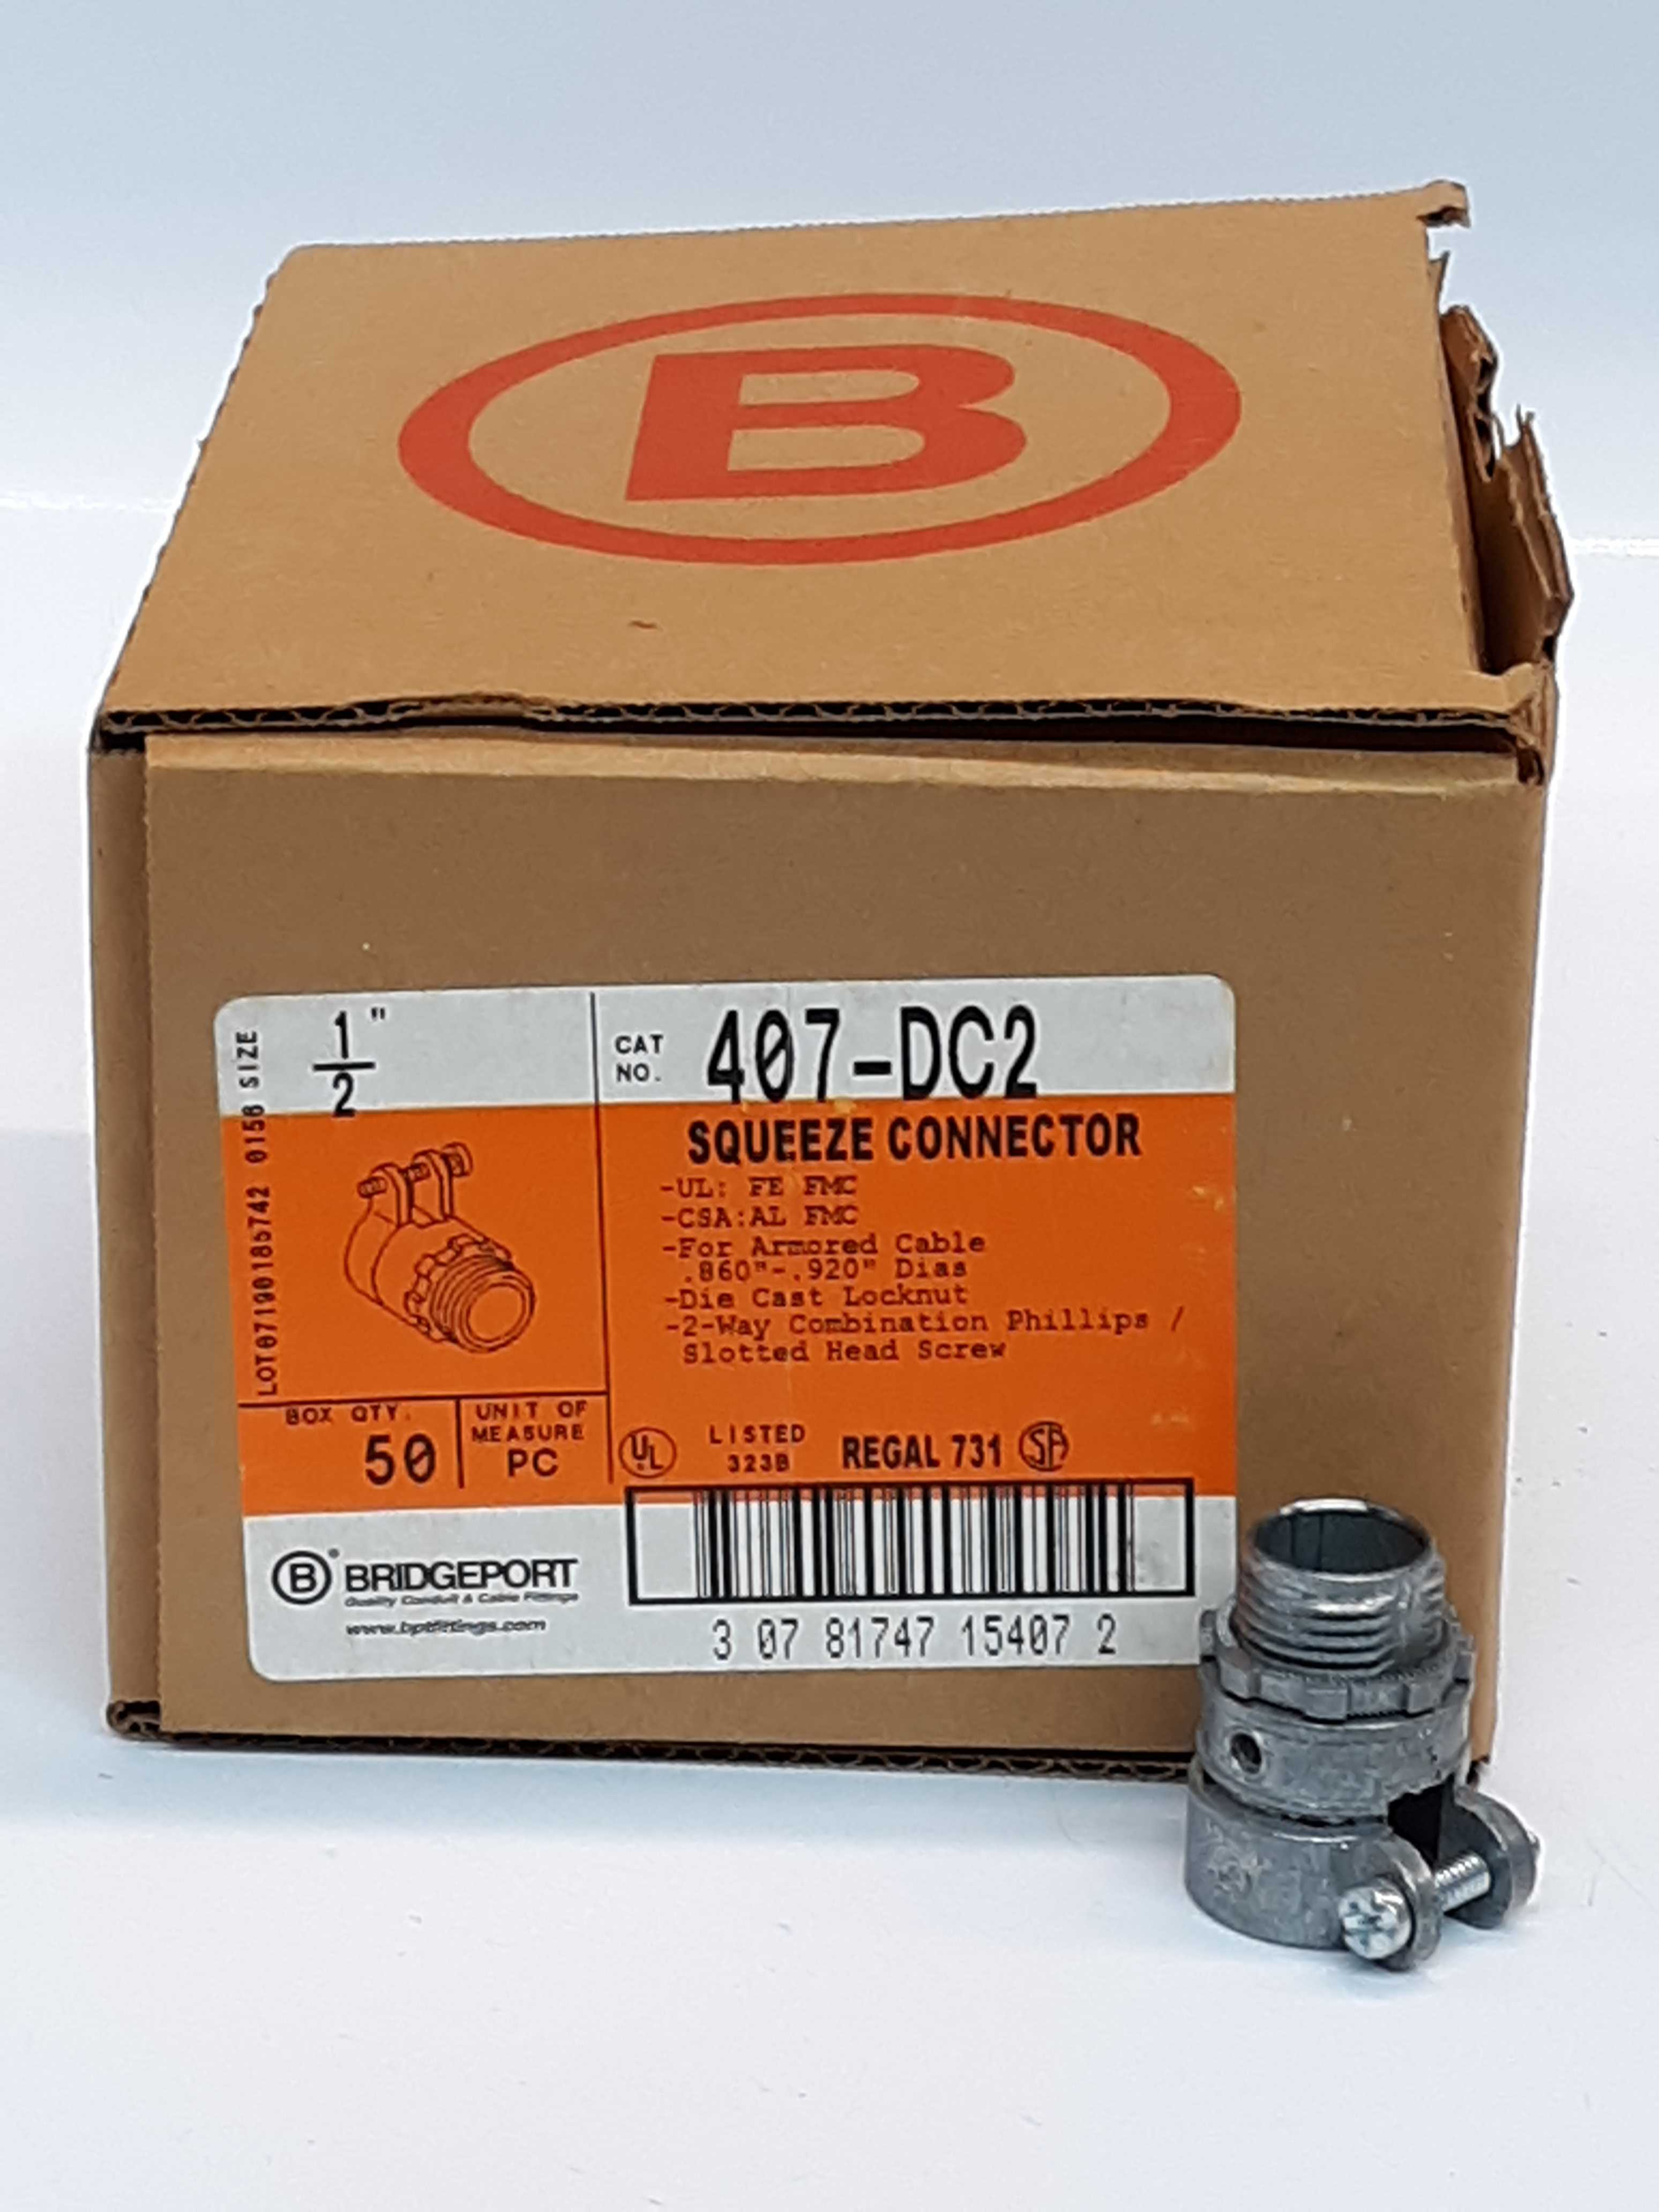 Bridgeport 407-DC2 Squeeze Connector Lot of 50